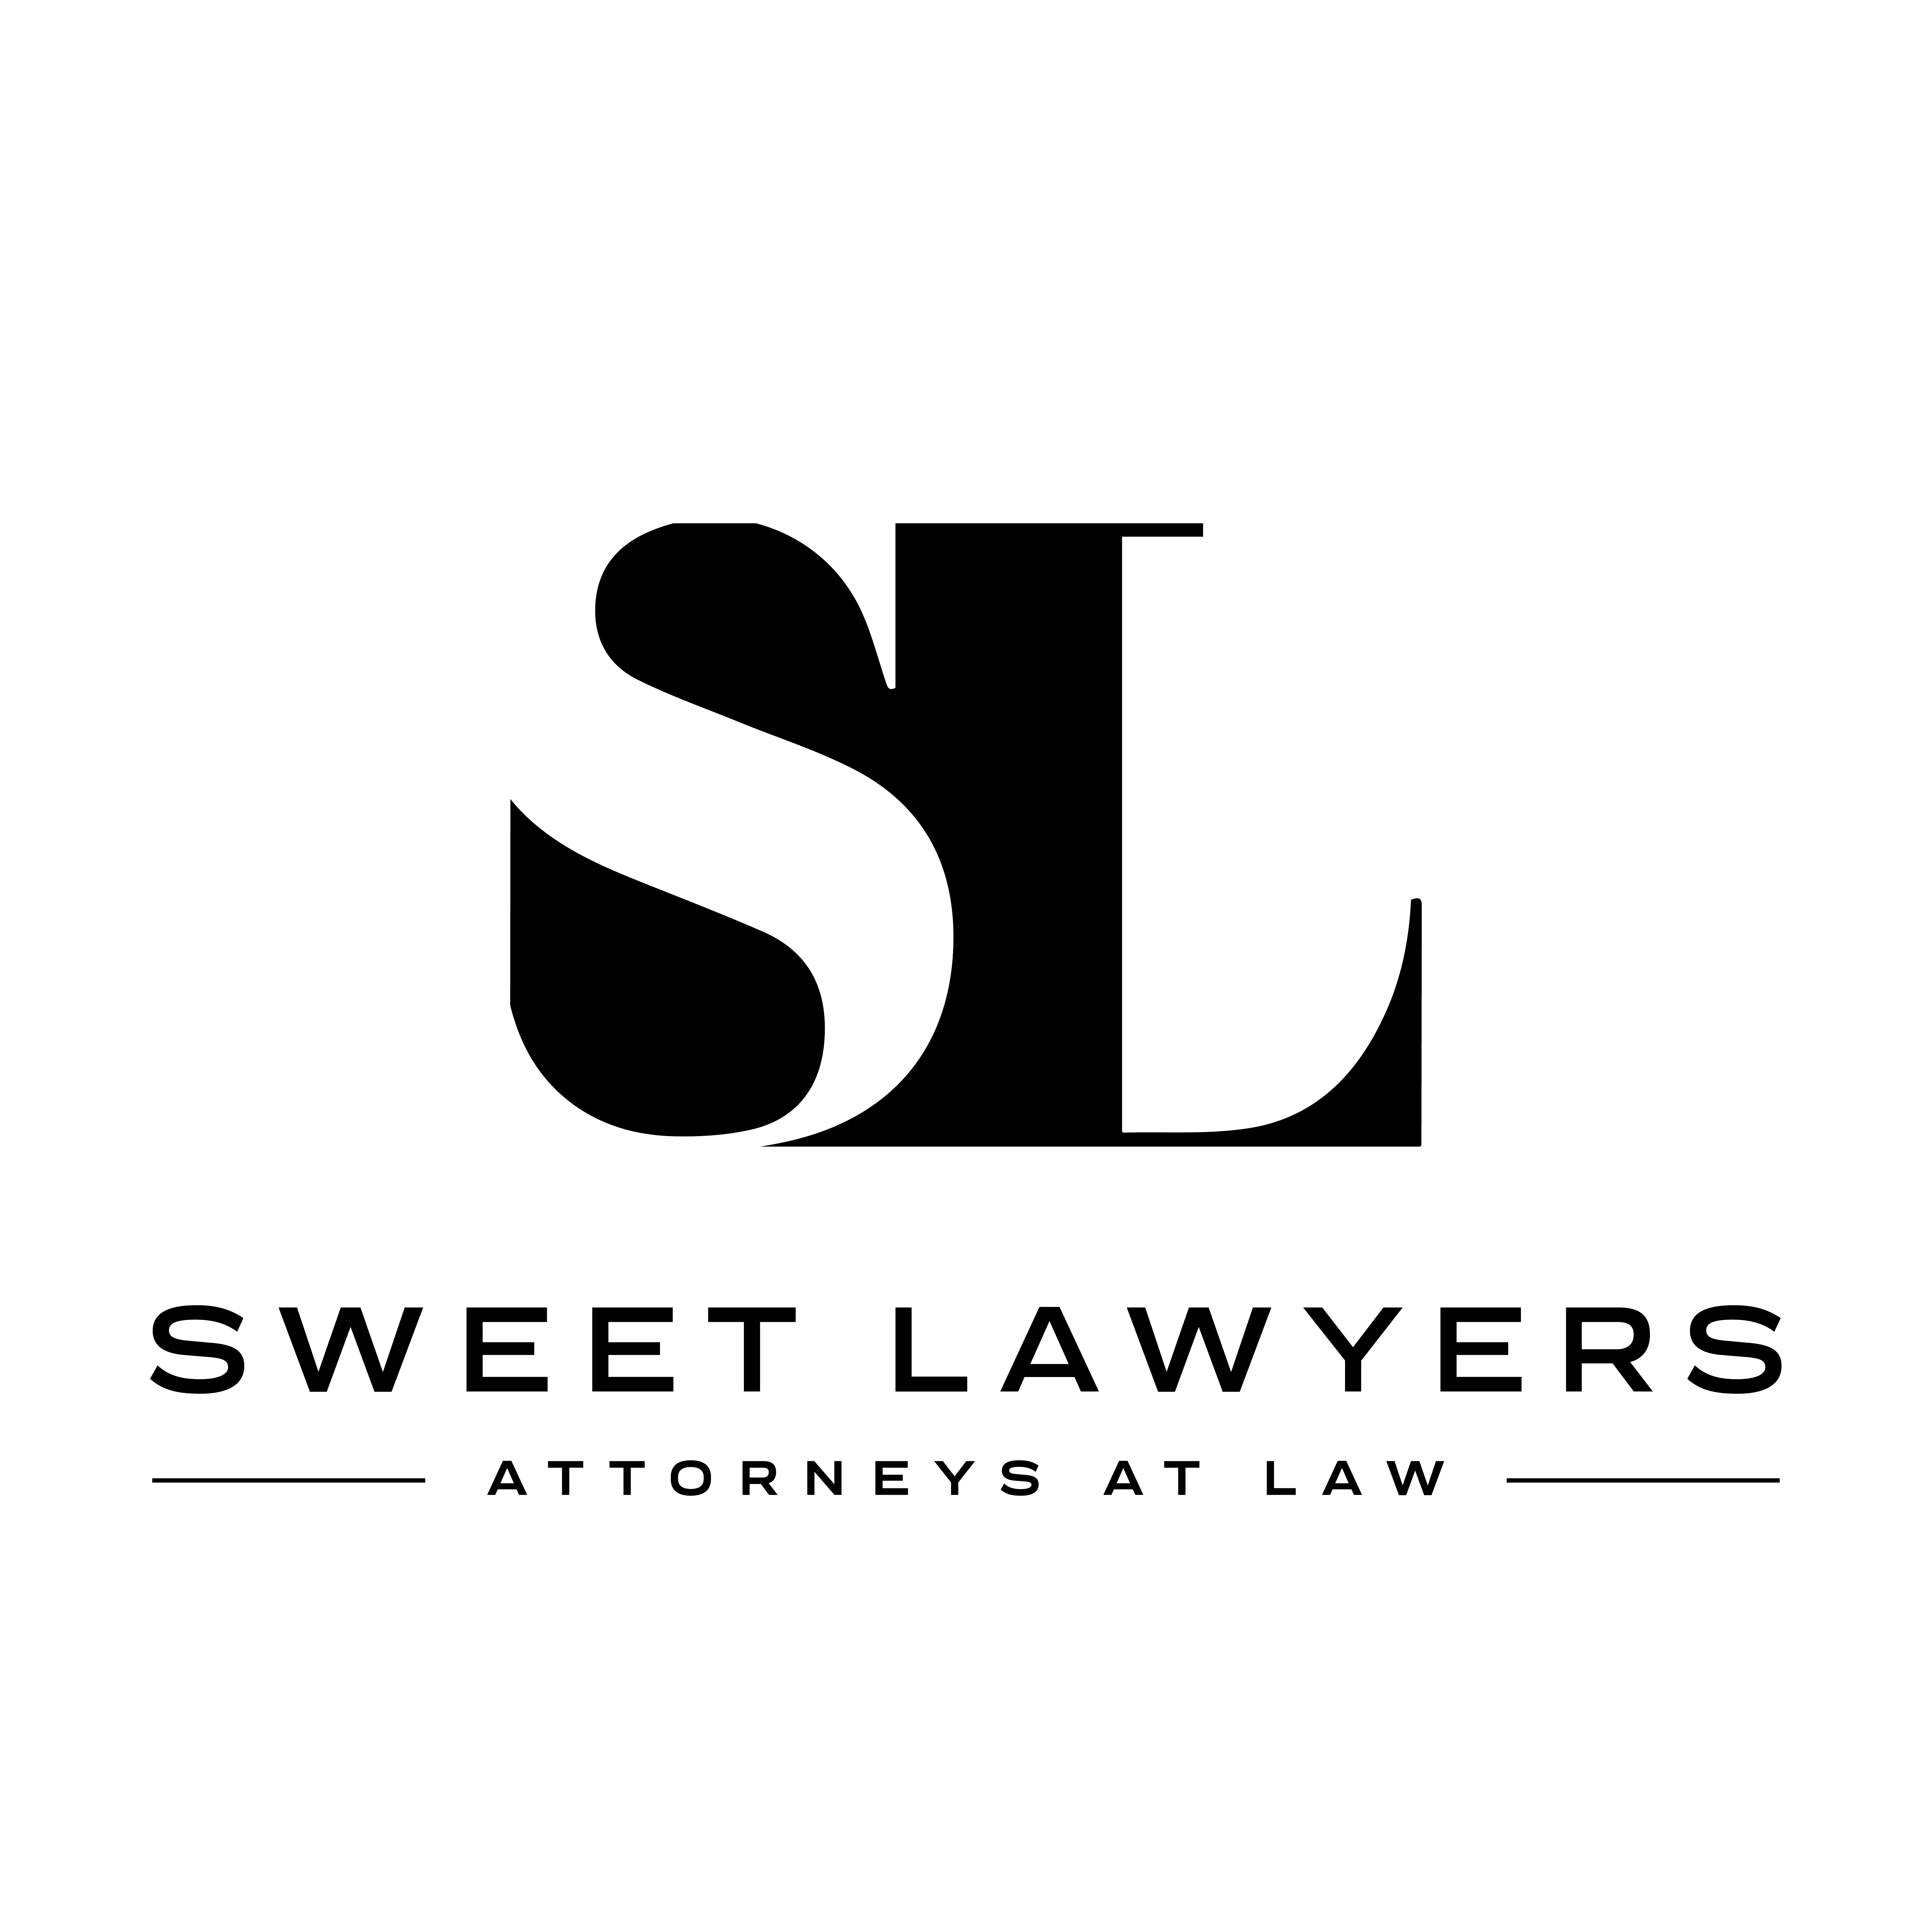 Sweet Lawyers is a Personal Injury Attorney Law Firm in Costa Mesa, CA, Representing Accident Victims in Personal Injury Cases